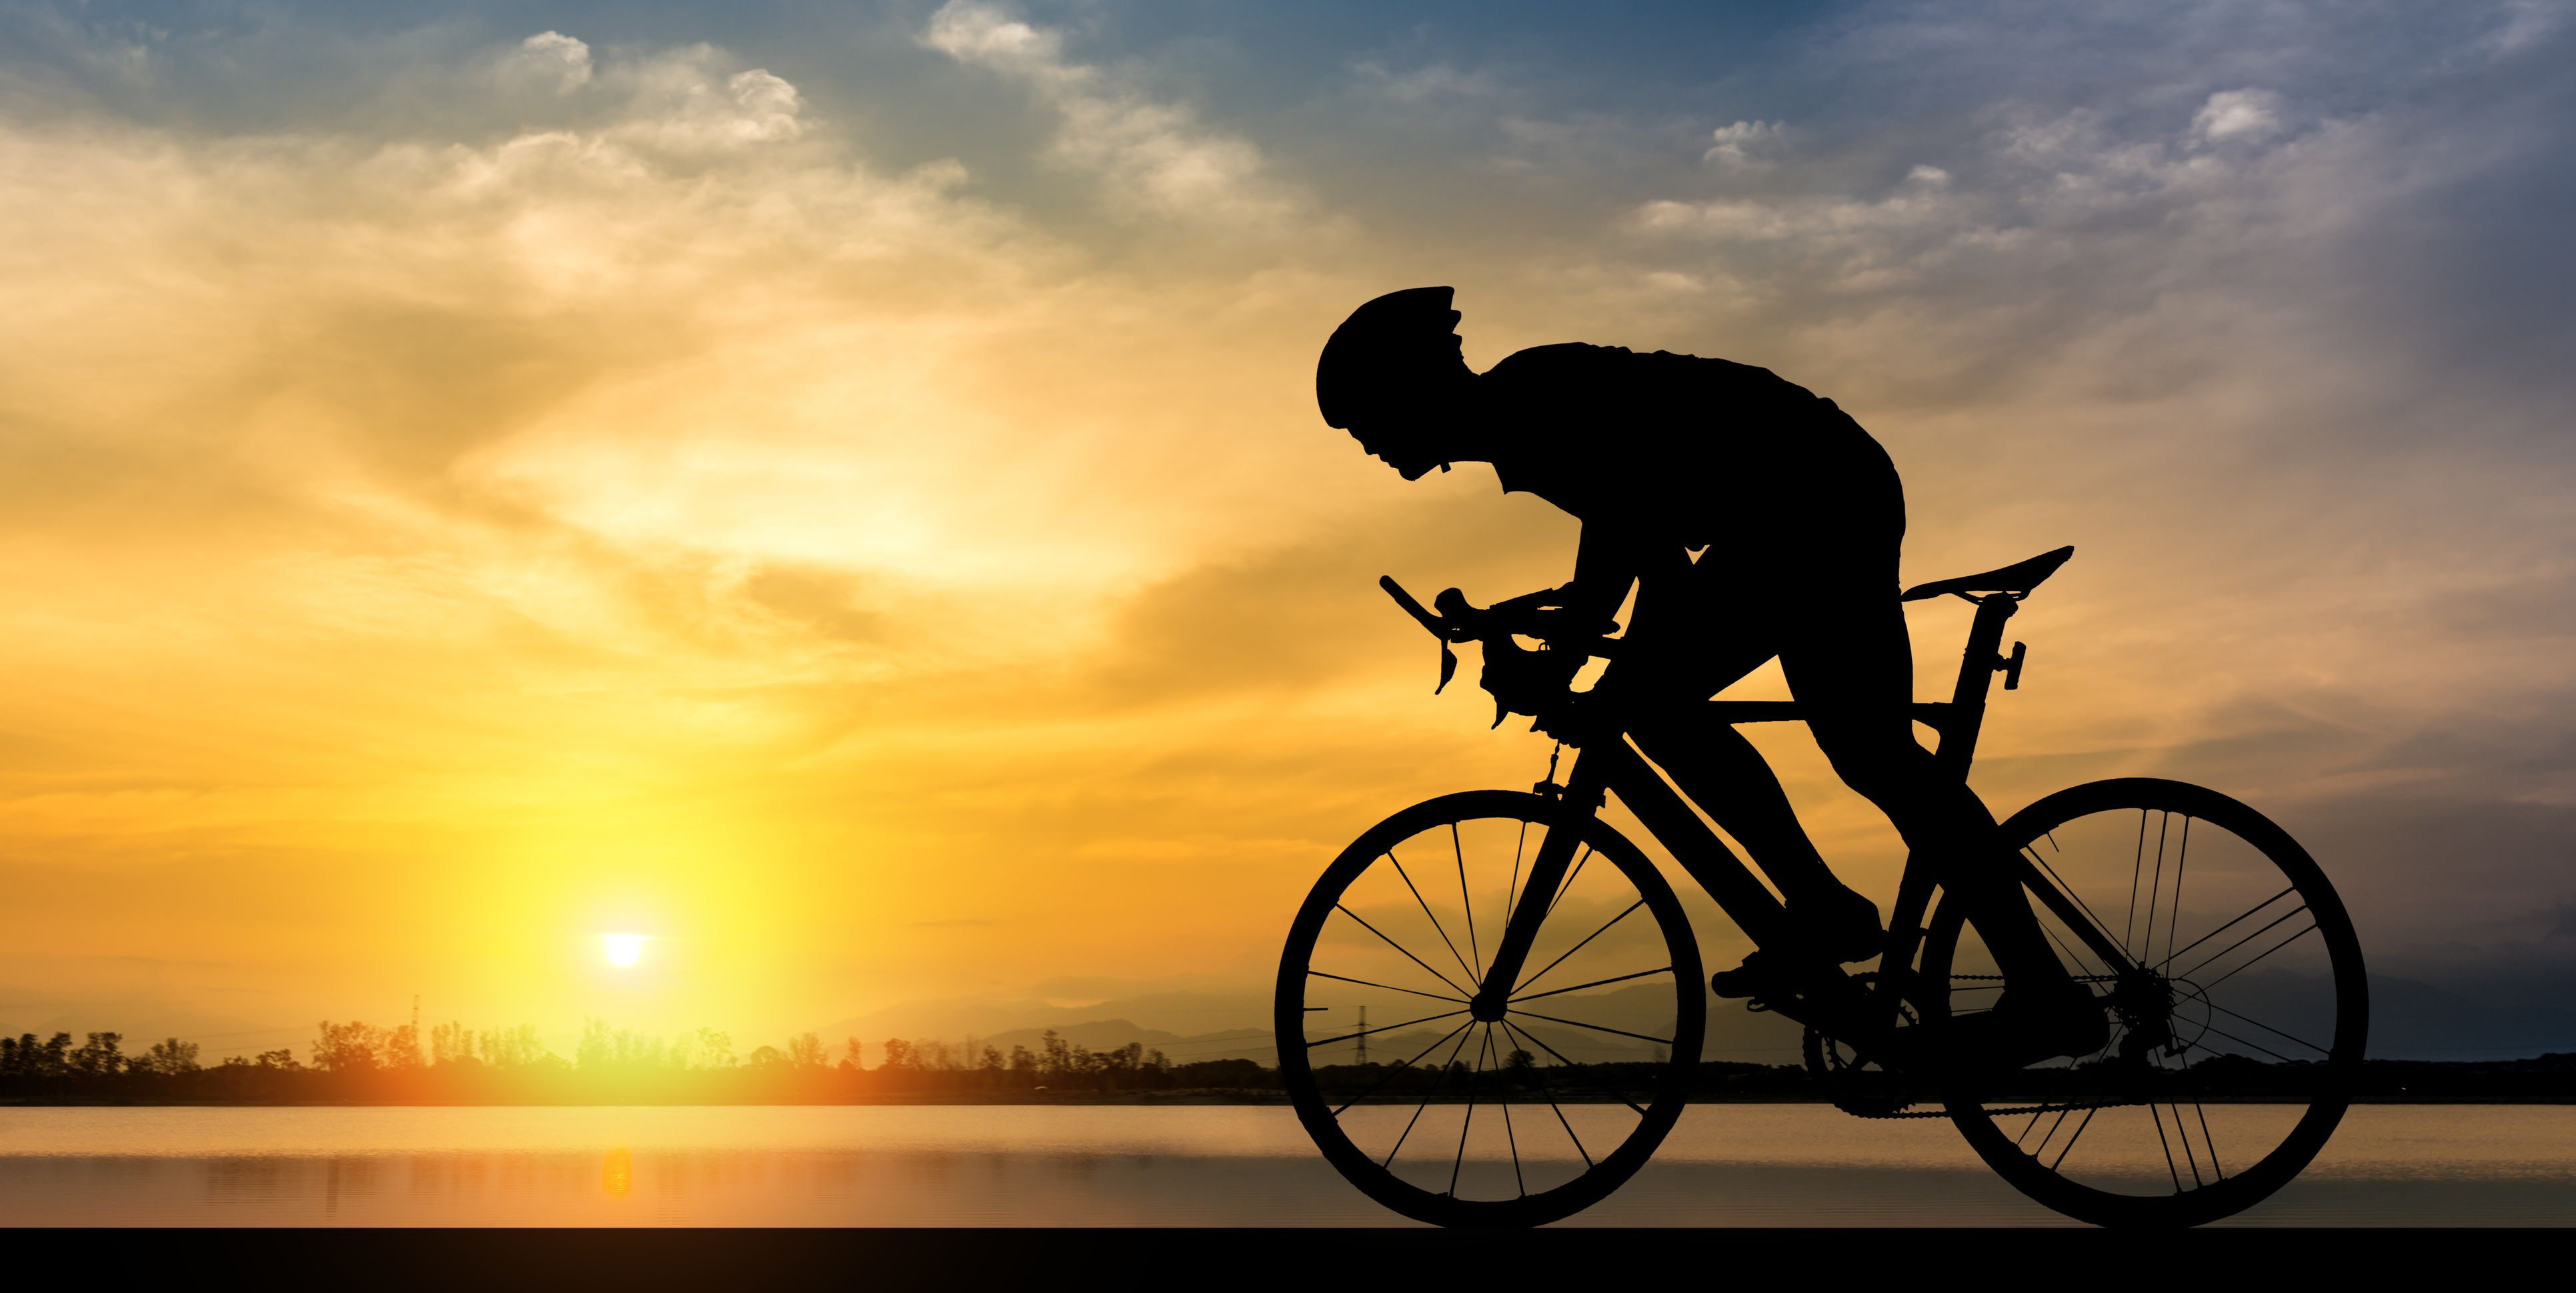 Silhouette Man Riding Bicycle Against Sky During Sunset